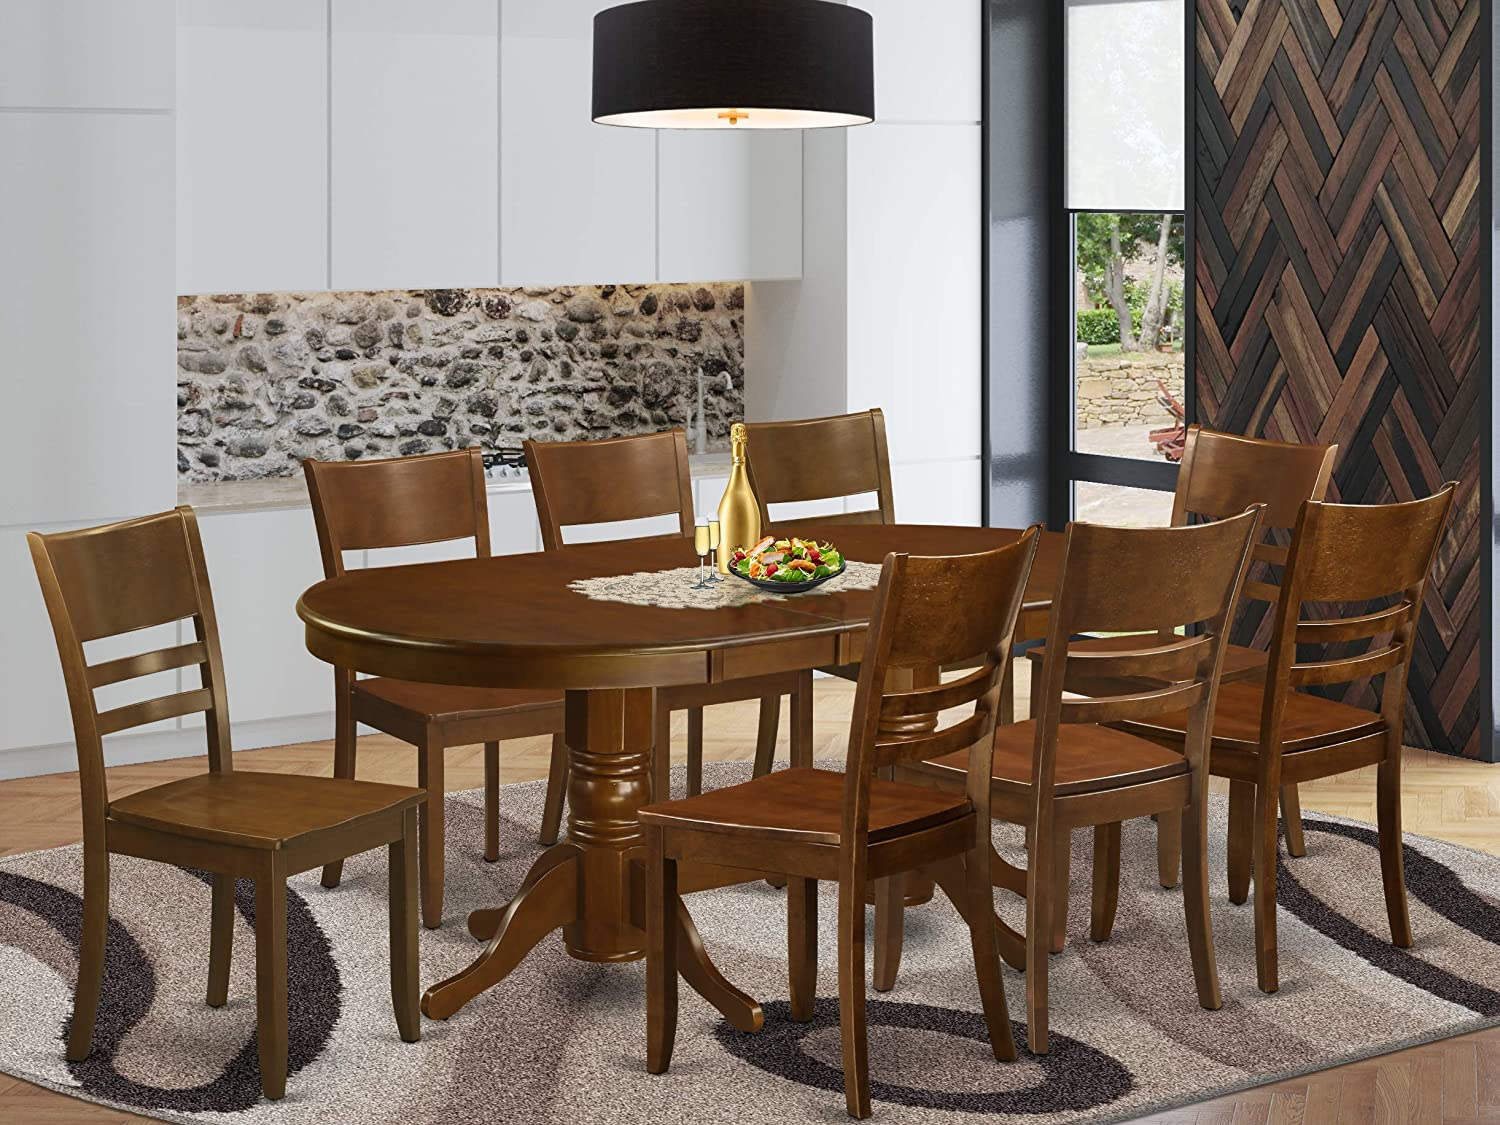 9 Pc set Vancouver Kitchen Table with a 17in Leaf and 8 Solidwood Seat Chairs in Espresso .